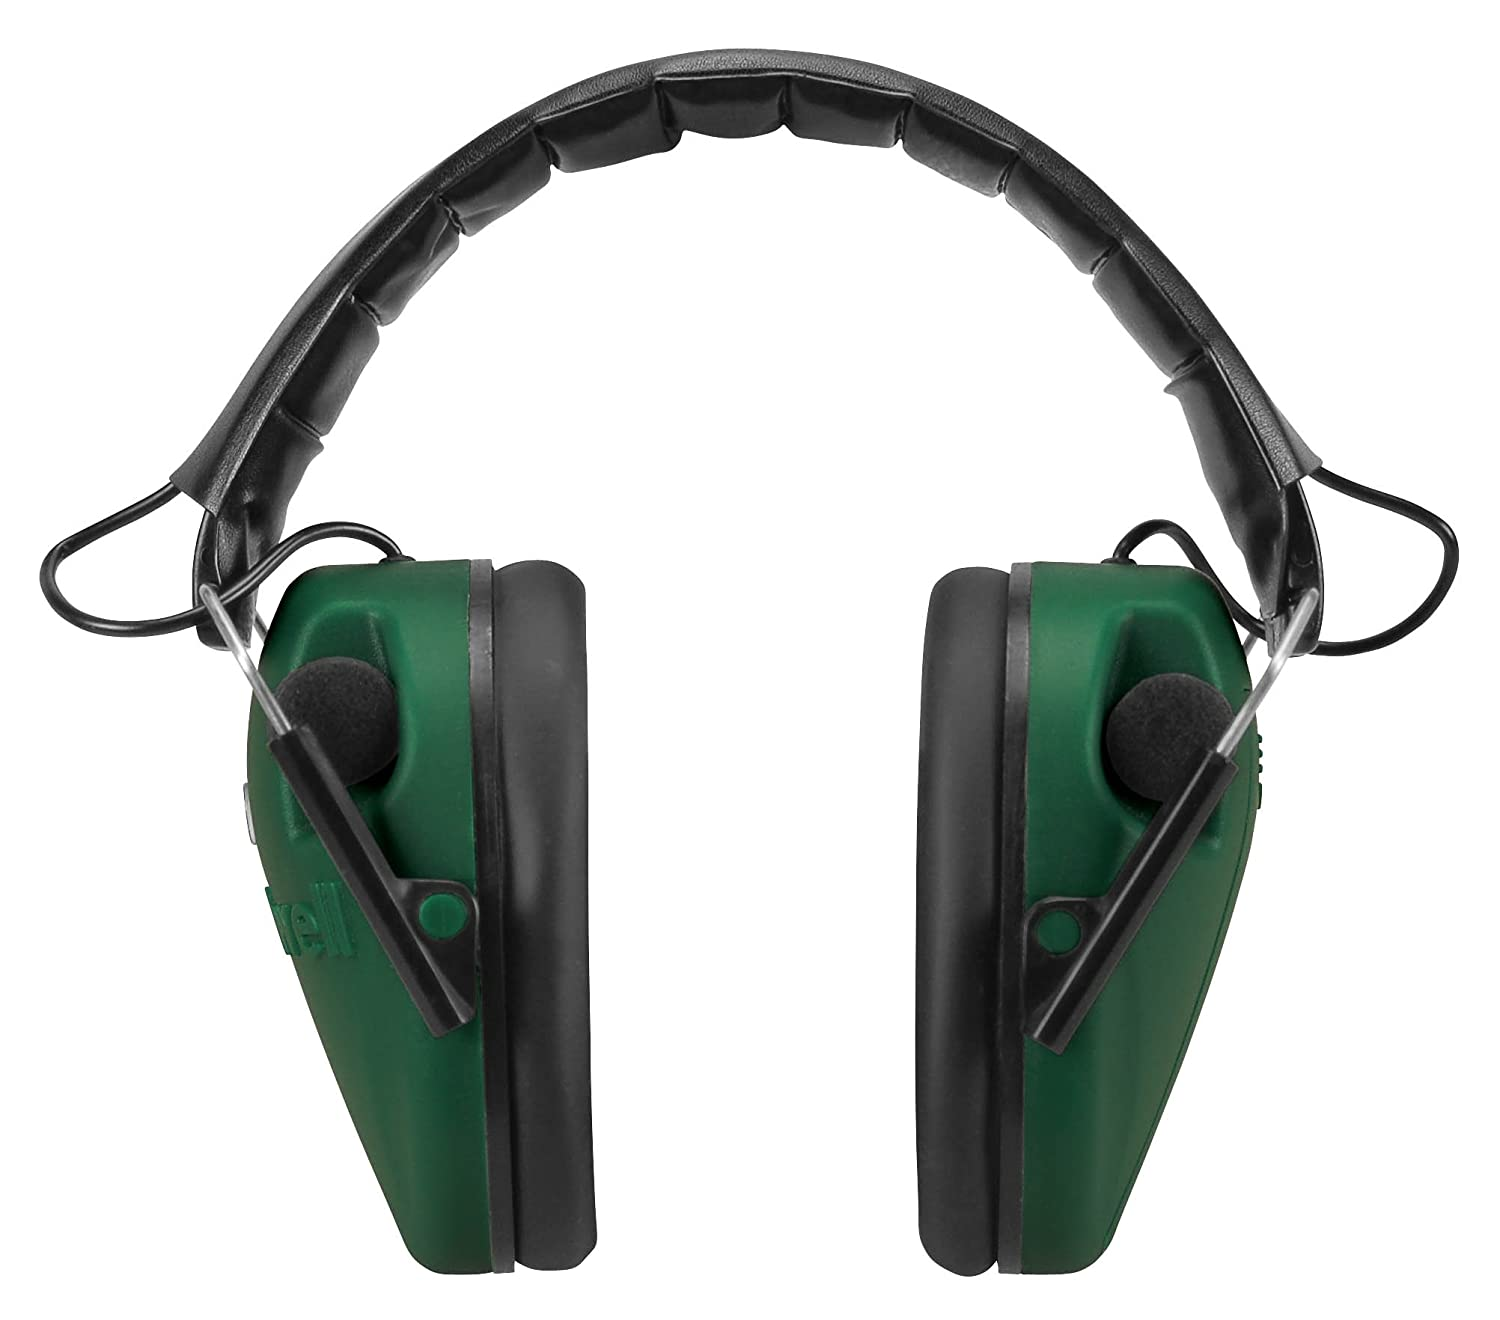 Best Earmuffs for the Firing Range Caldwell E-Max Low Profile Electronic Muffs